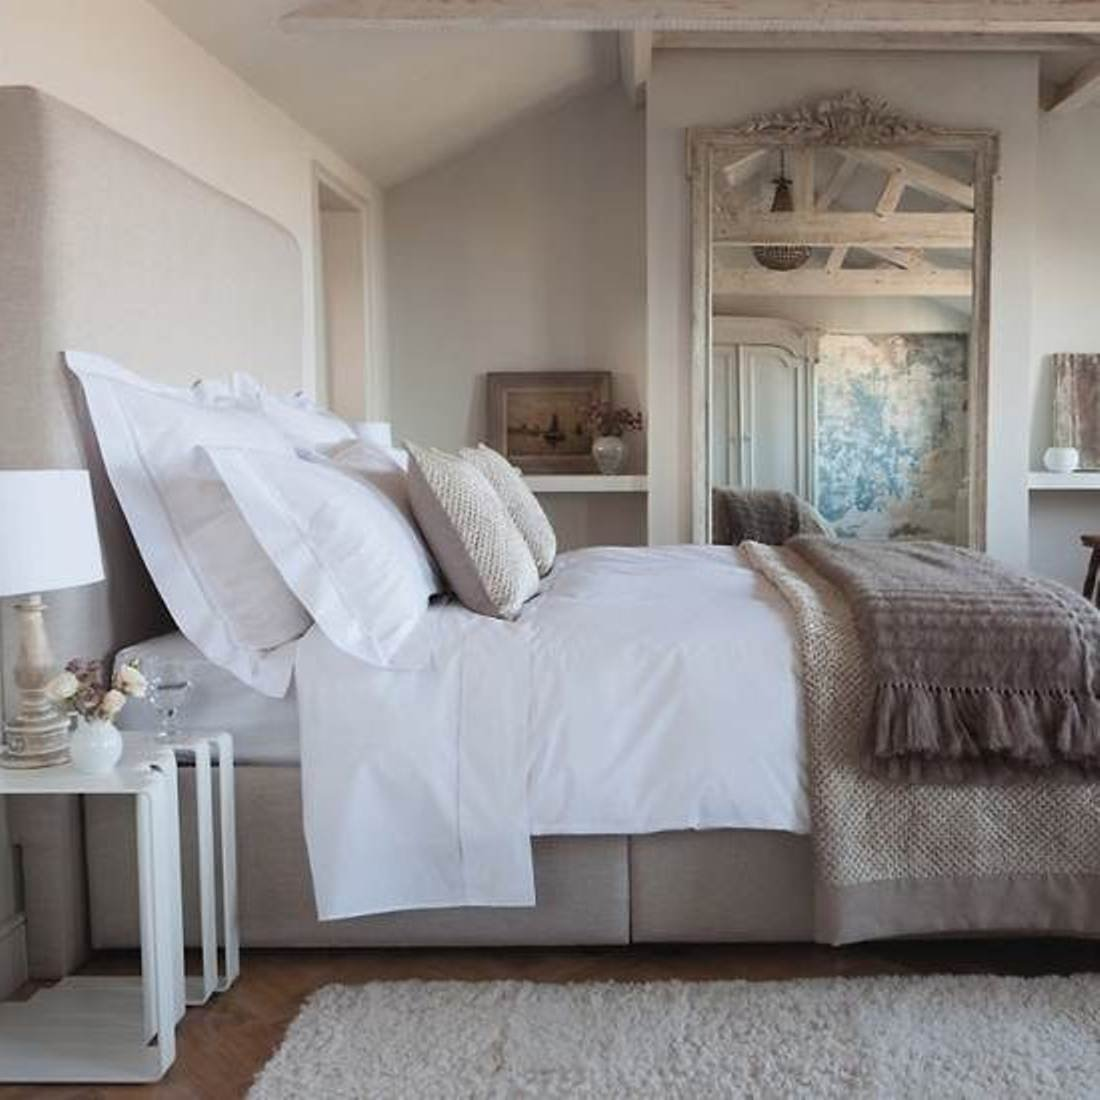 10 Beautiful Master Bedroom Ideas On A Budget decorating master bedroom ideas on a budget bedrooms pinterest with 2020